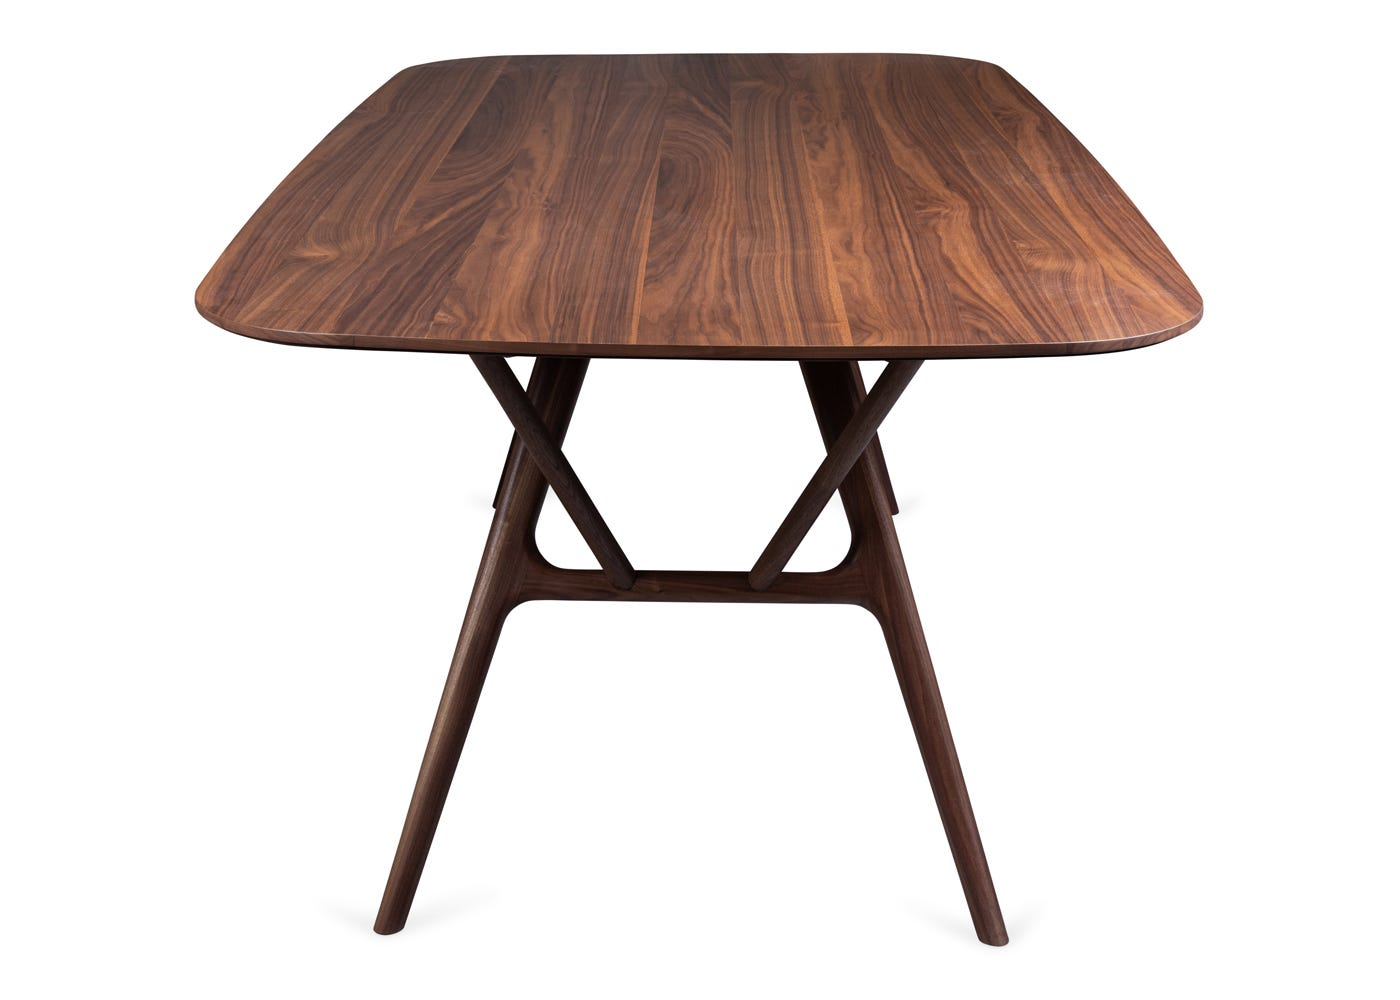 As shown: Anais walnut dining table - Side profile.